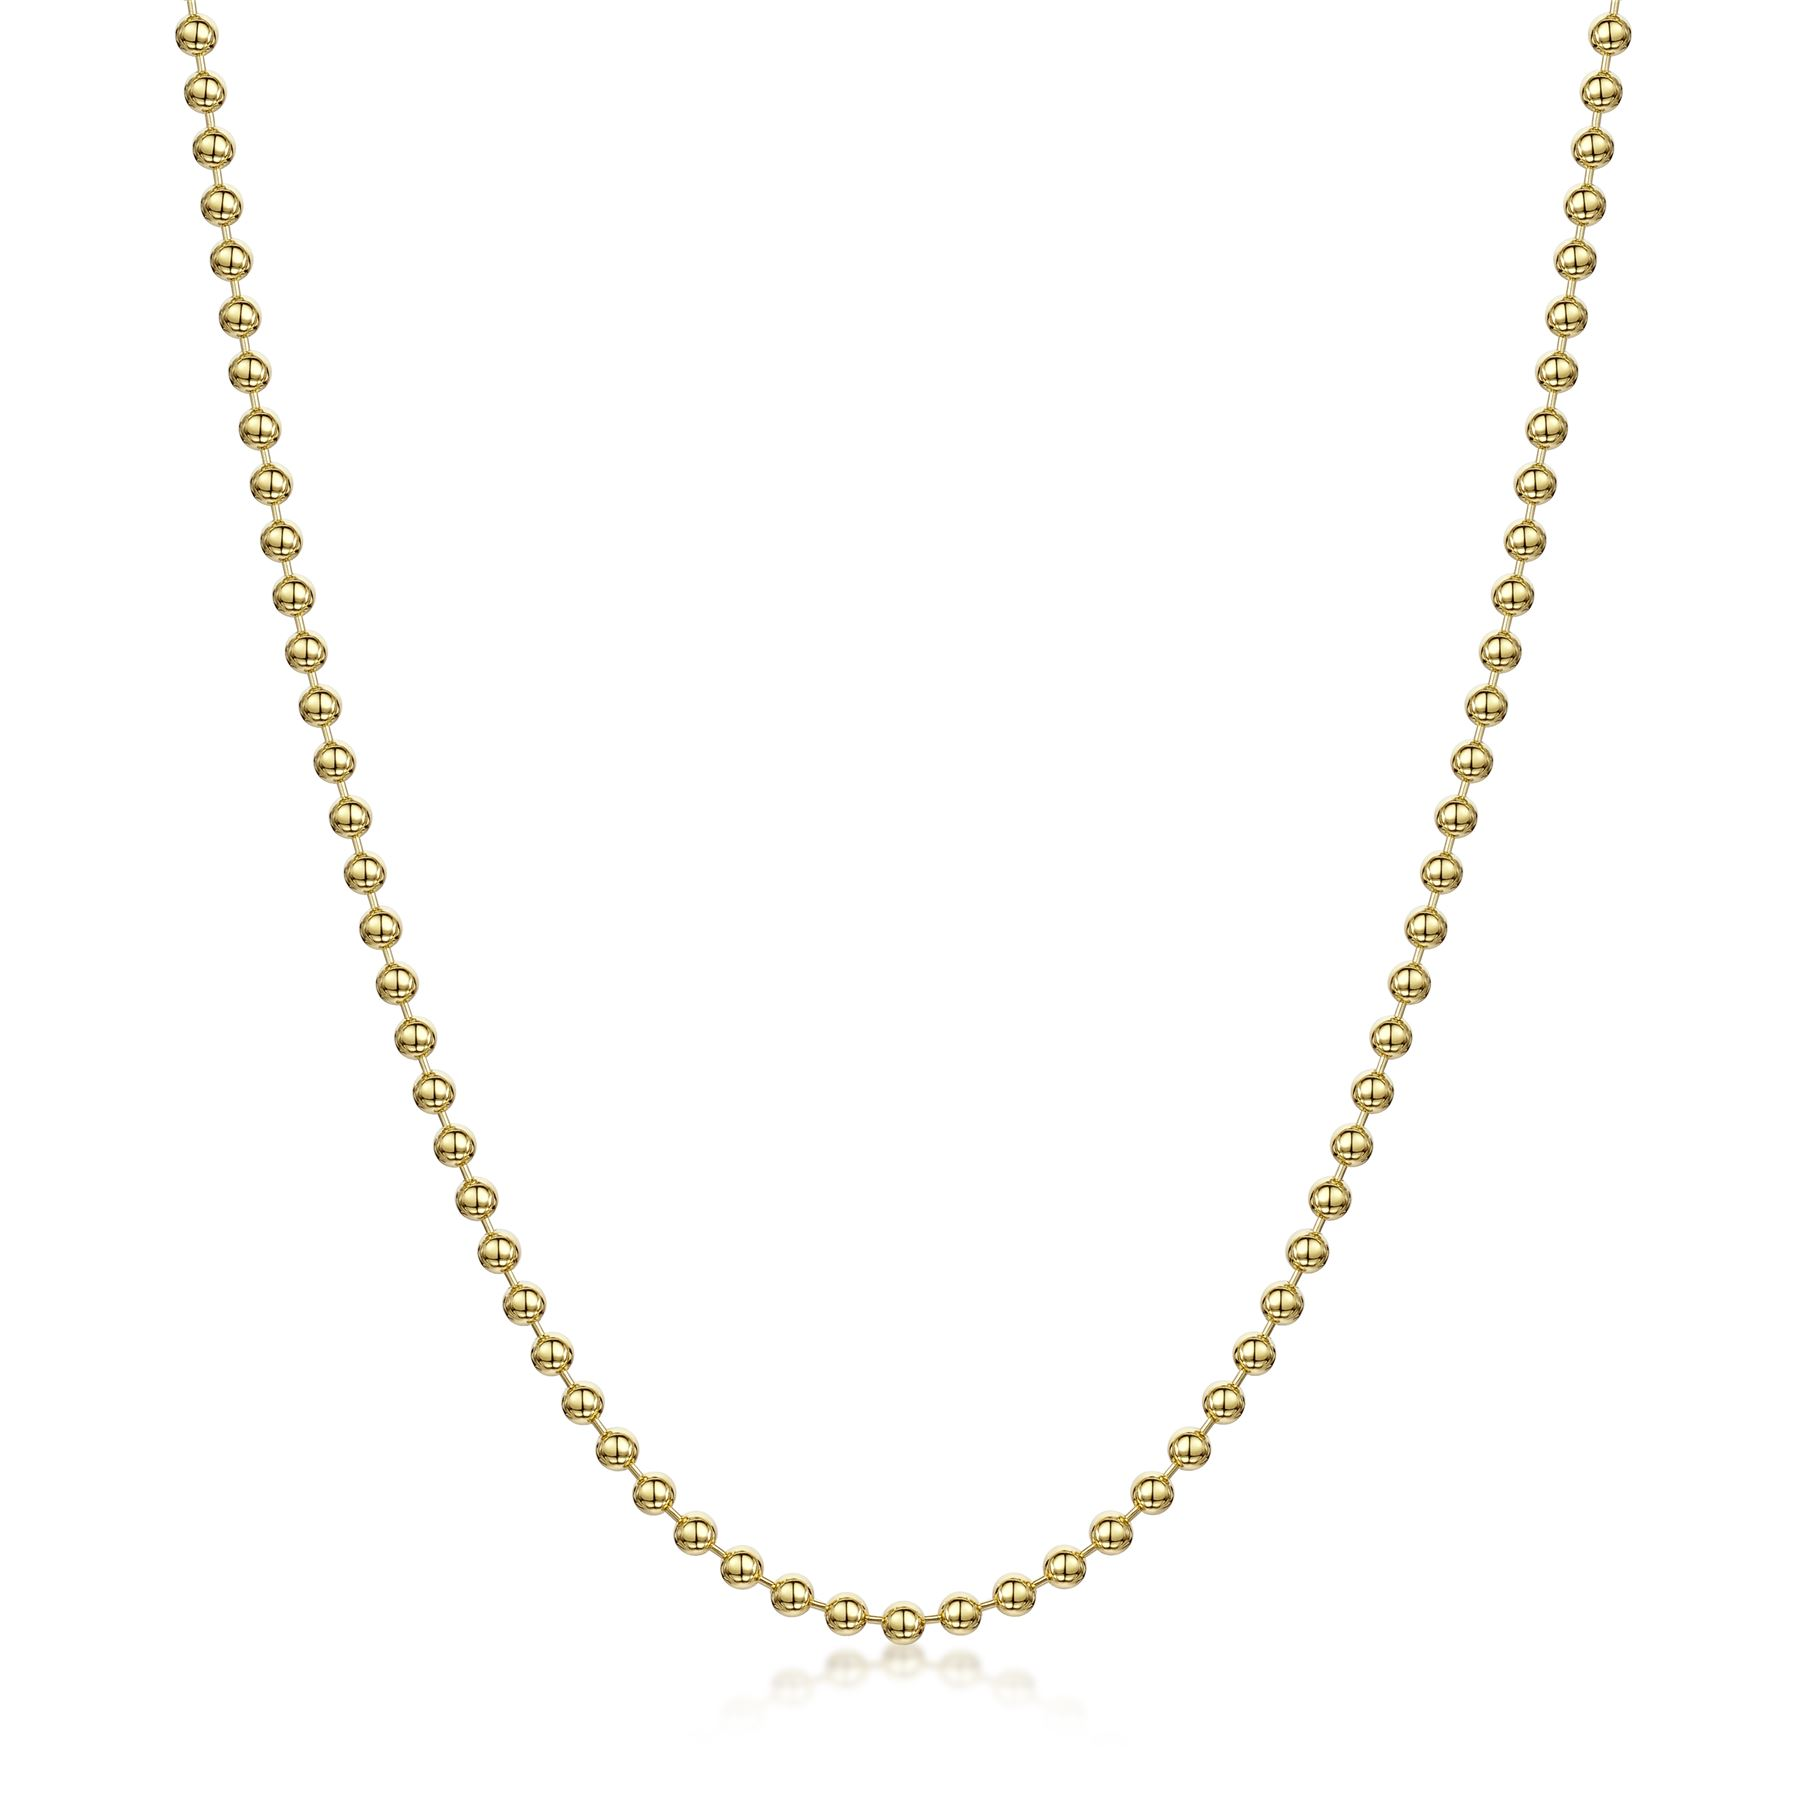 Amberta-Genuine-Gold-Plated-on-Real-925-Sterling-Silver-Necklace-Chain-Italy miniatura 27